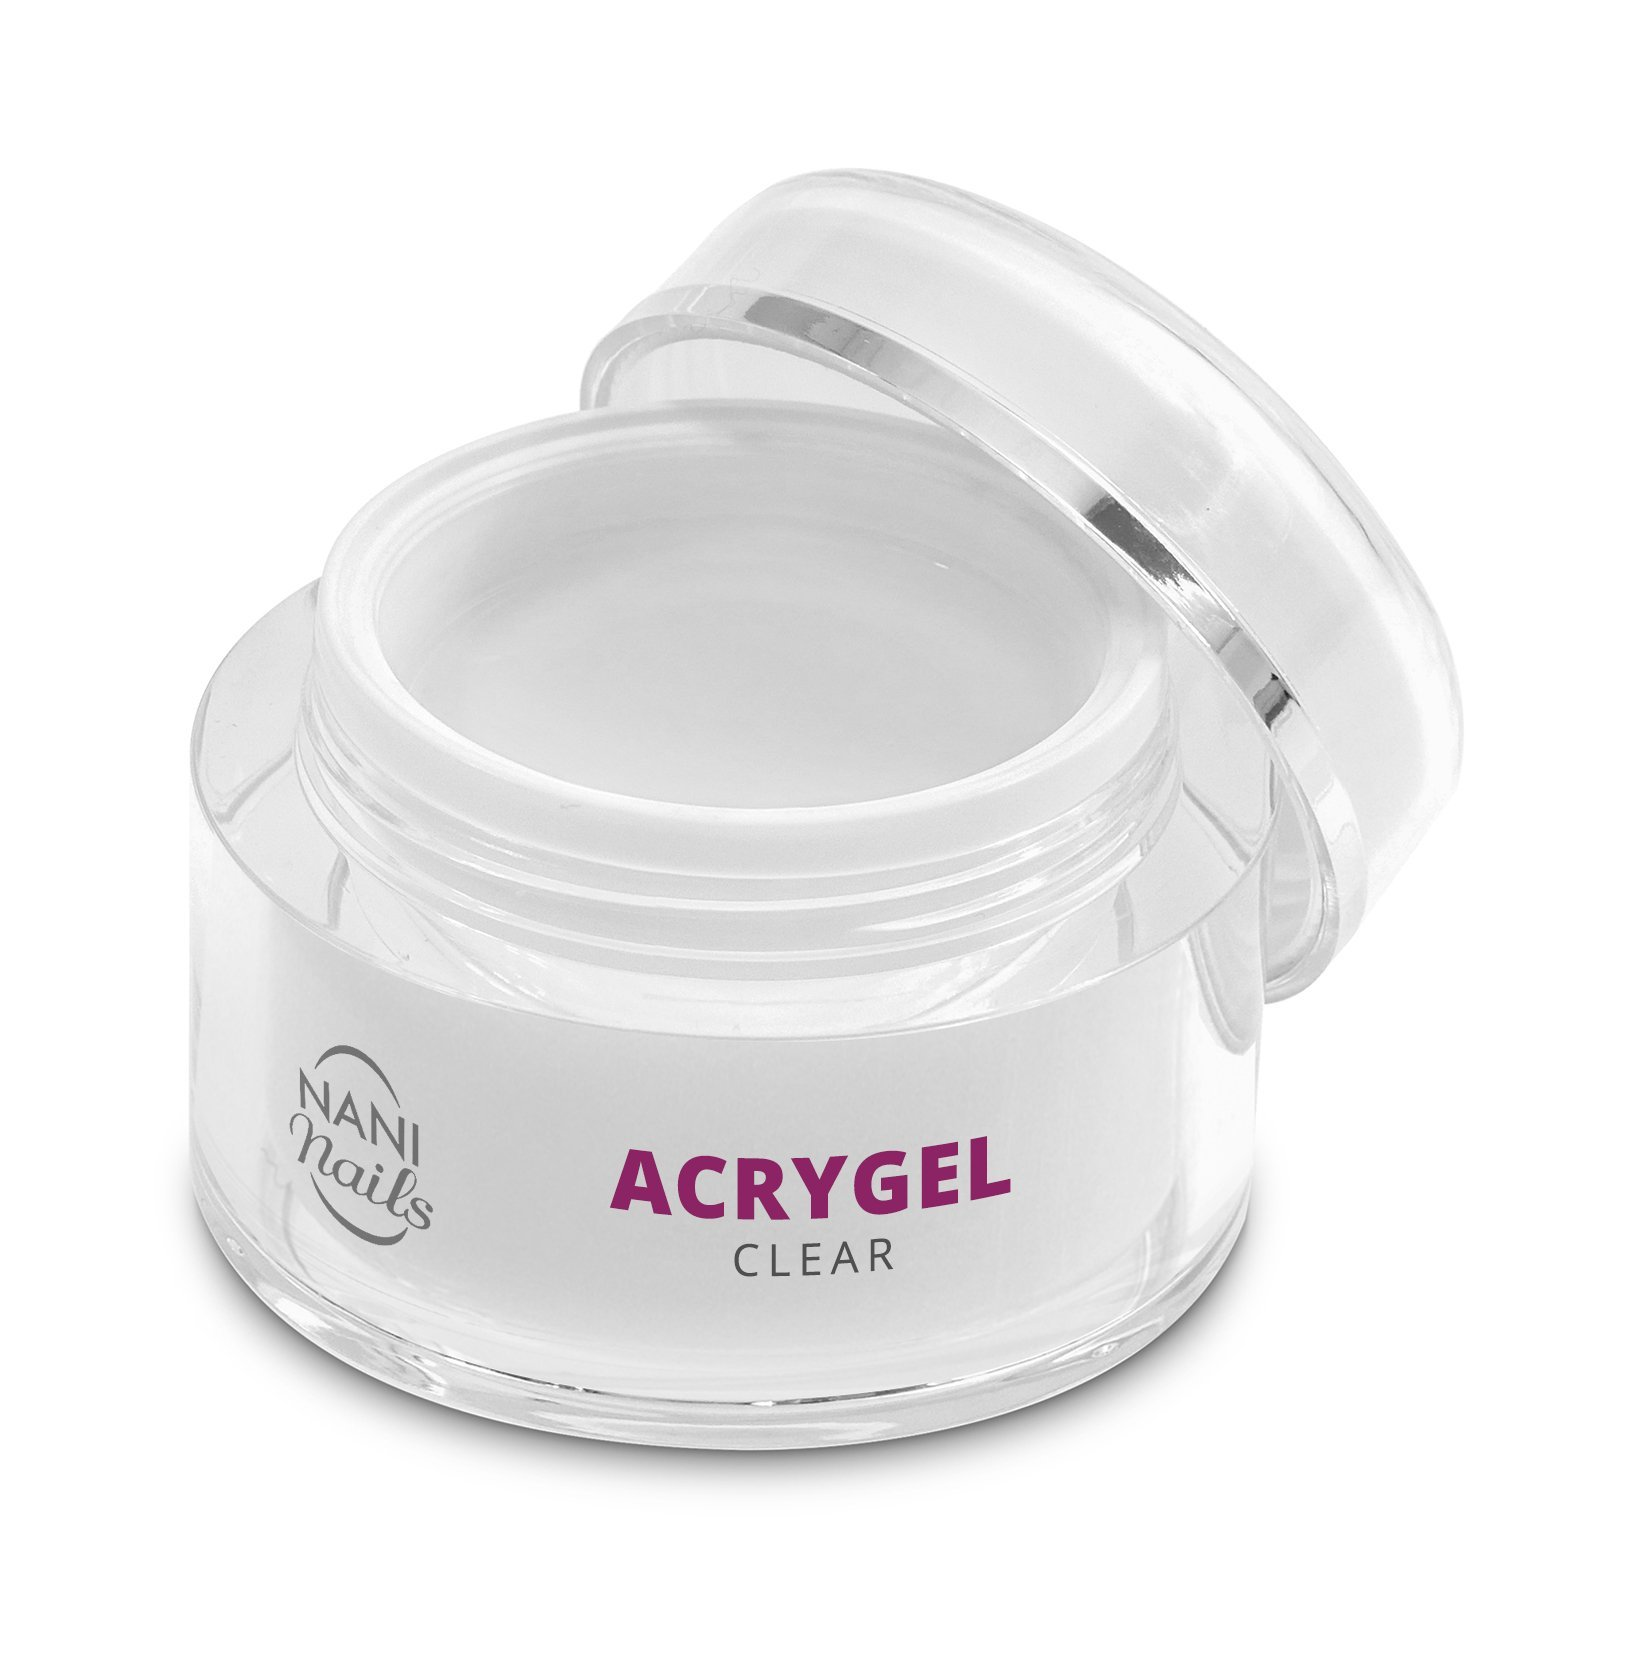 NANI UV akrygél 15 ml - Clear